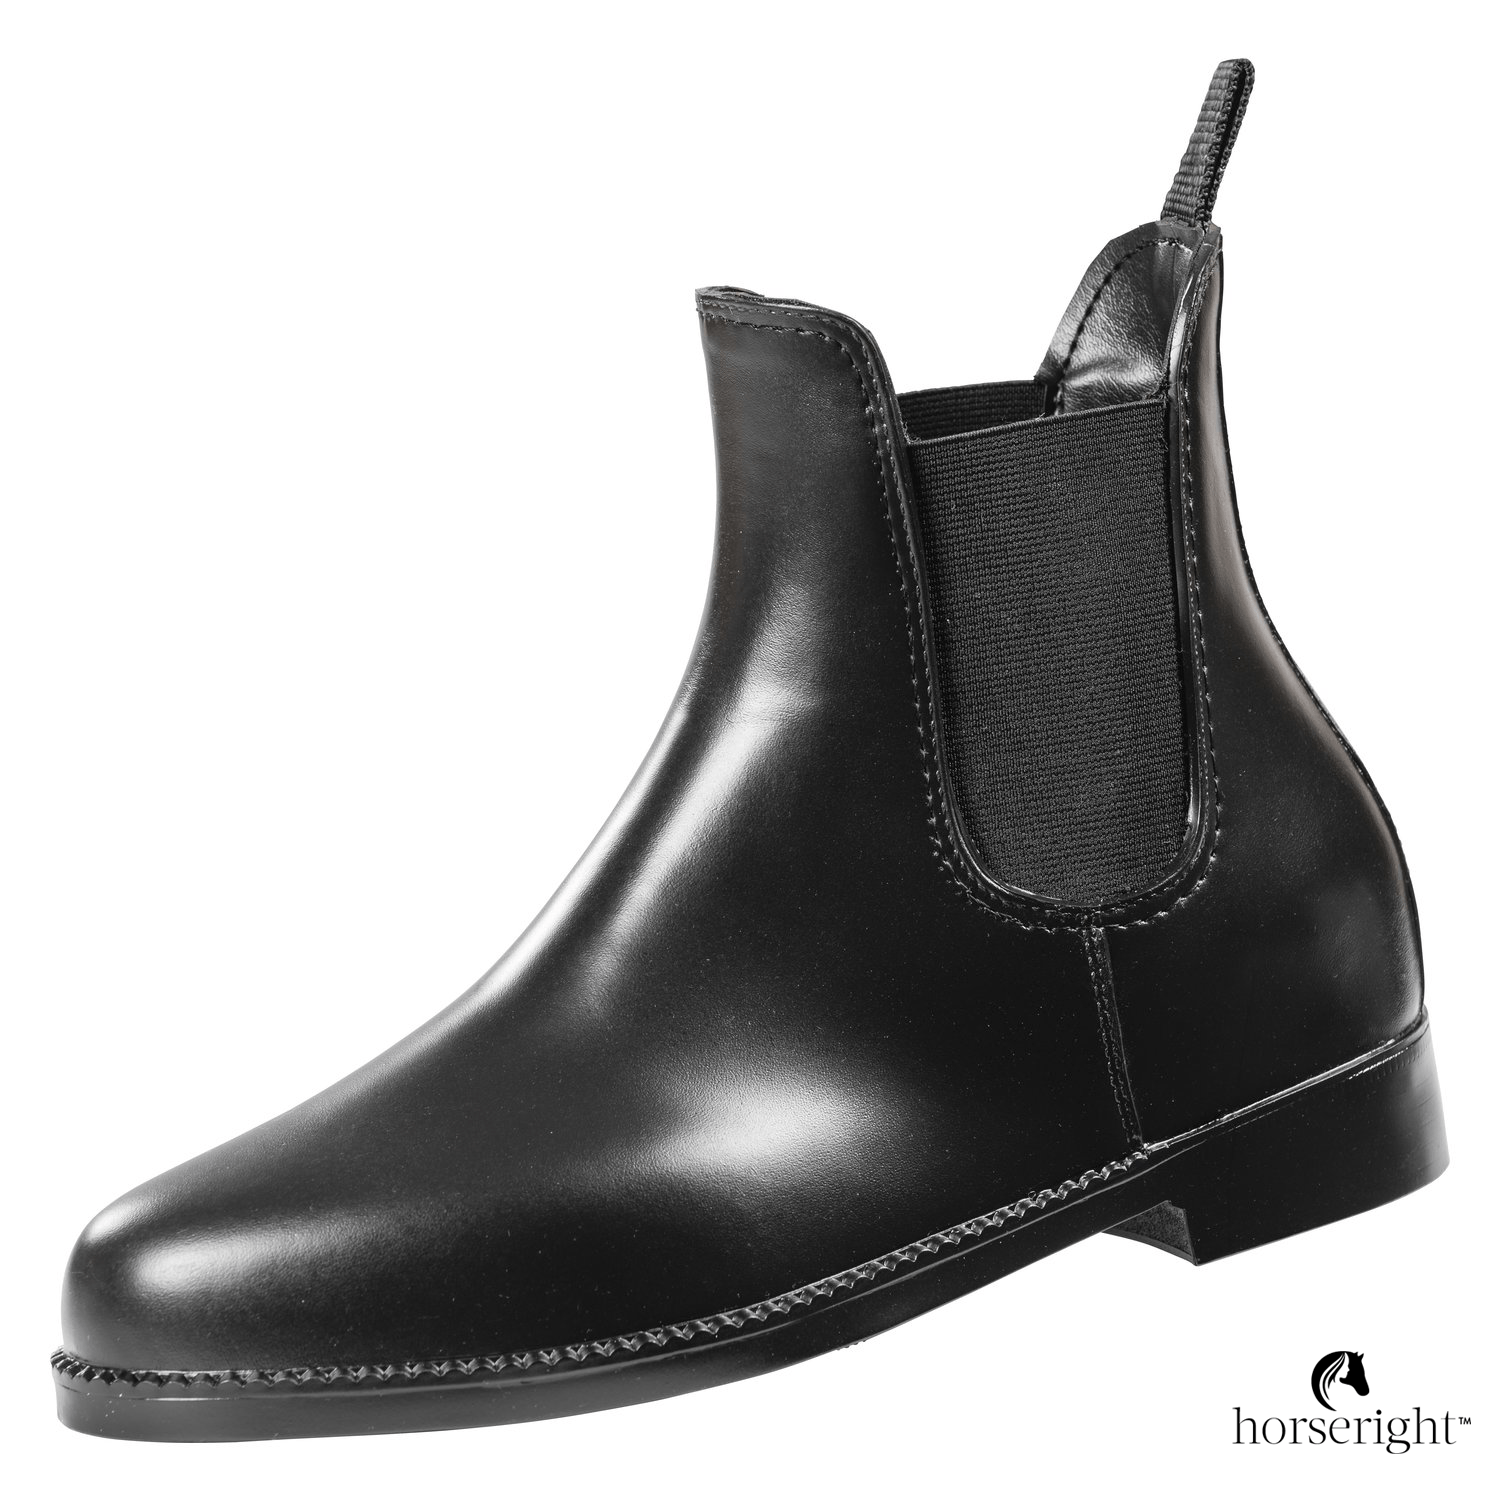 Loesdau Leather Look Riding Boots